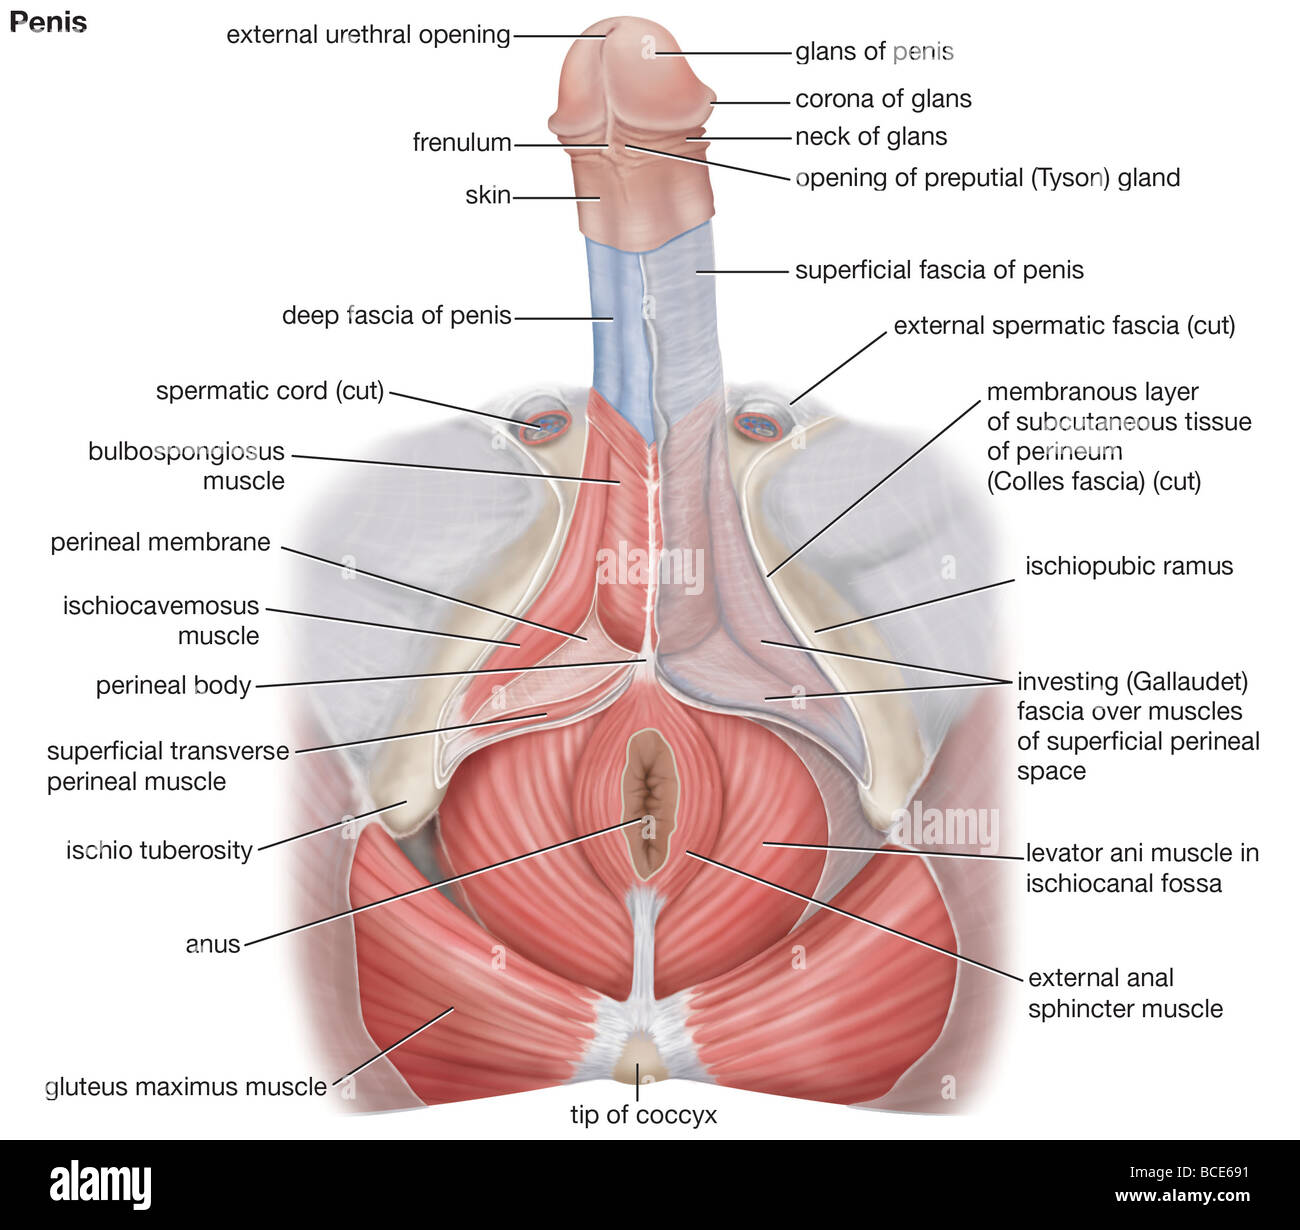 Diagram of penis in anal